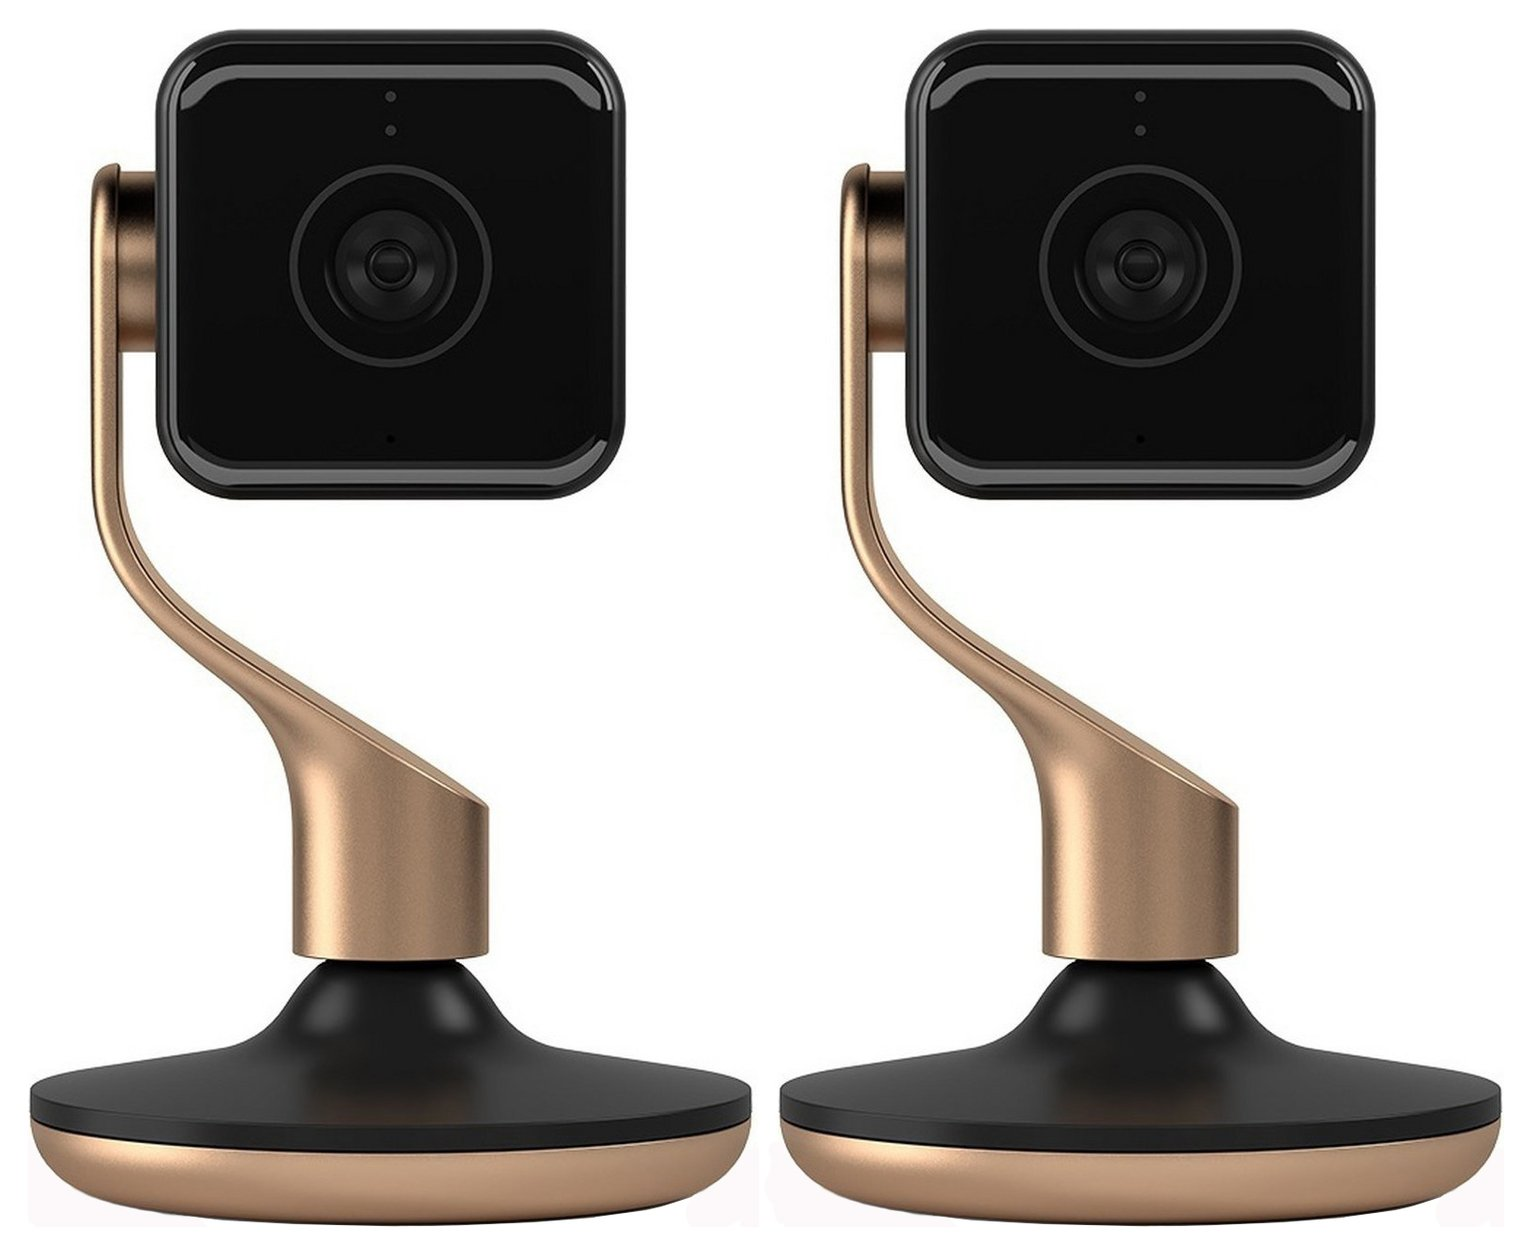 Image of Hive View - 2 Pack - Black